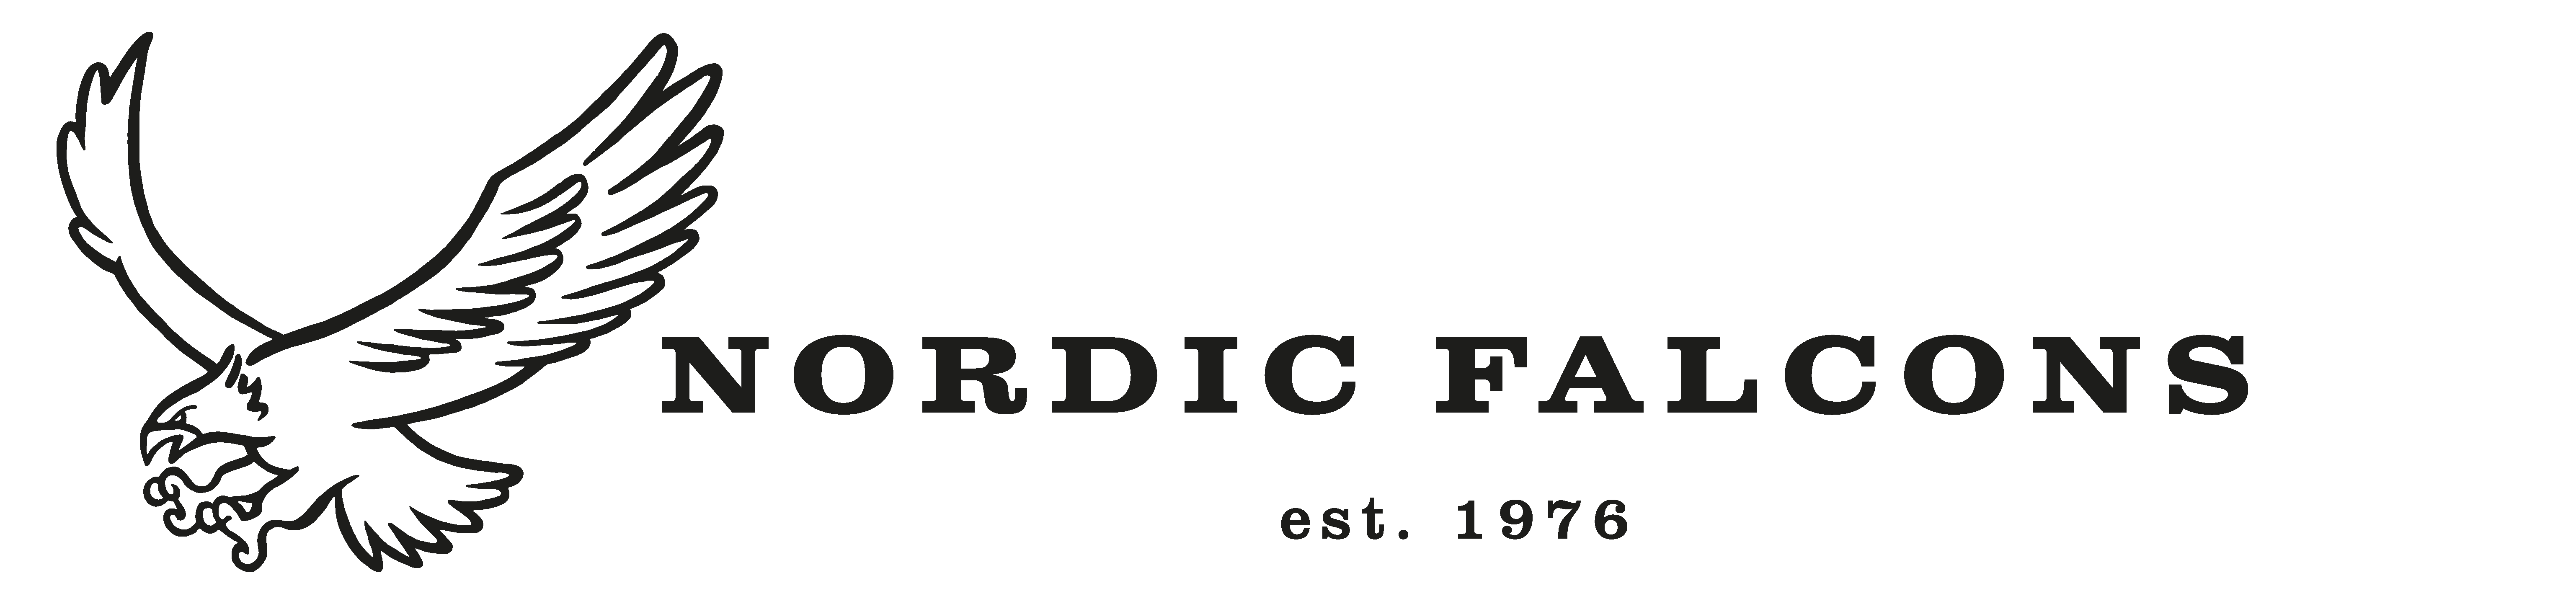 Nordic Falcons Shop